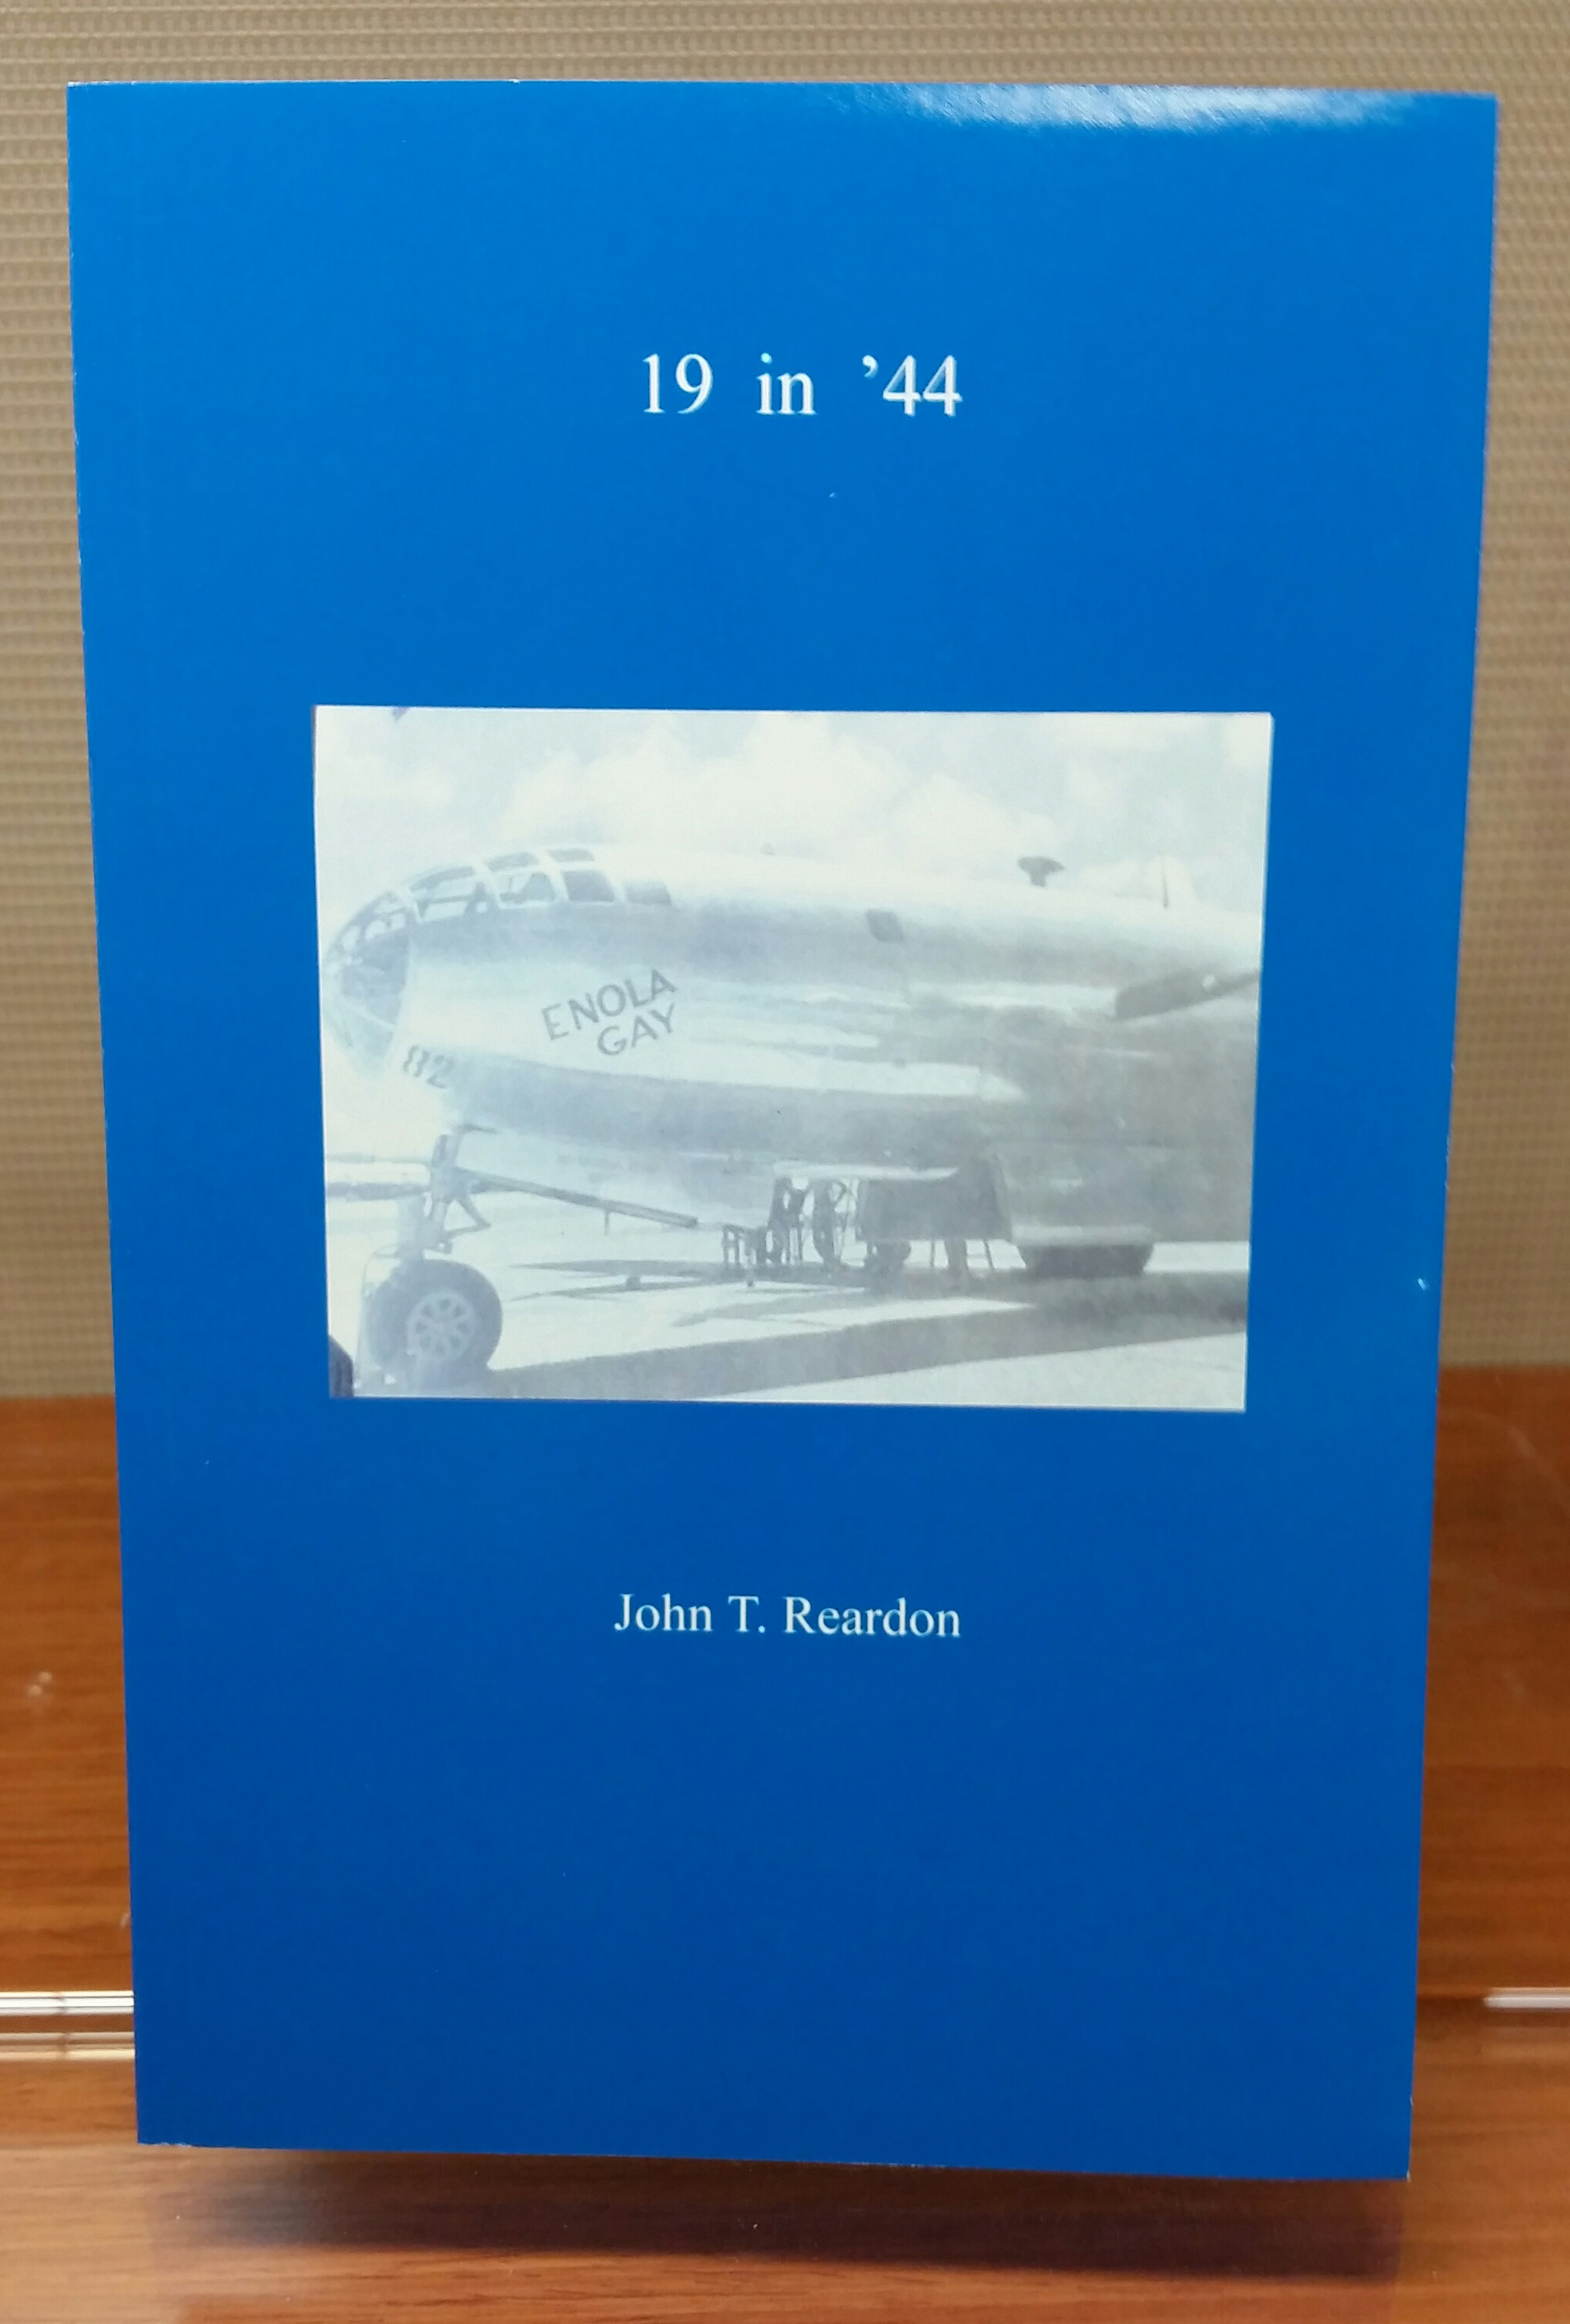 19 in '44, by John T. Reardon, 2016, 127 pp. Prices reflect the cost of the book PLUS S&H fee of $3.00.